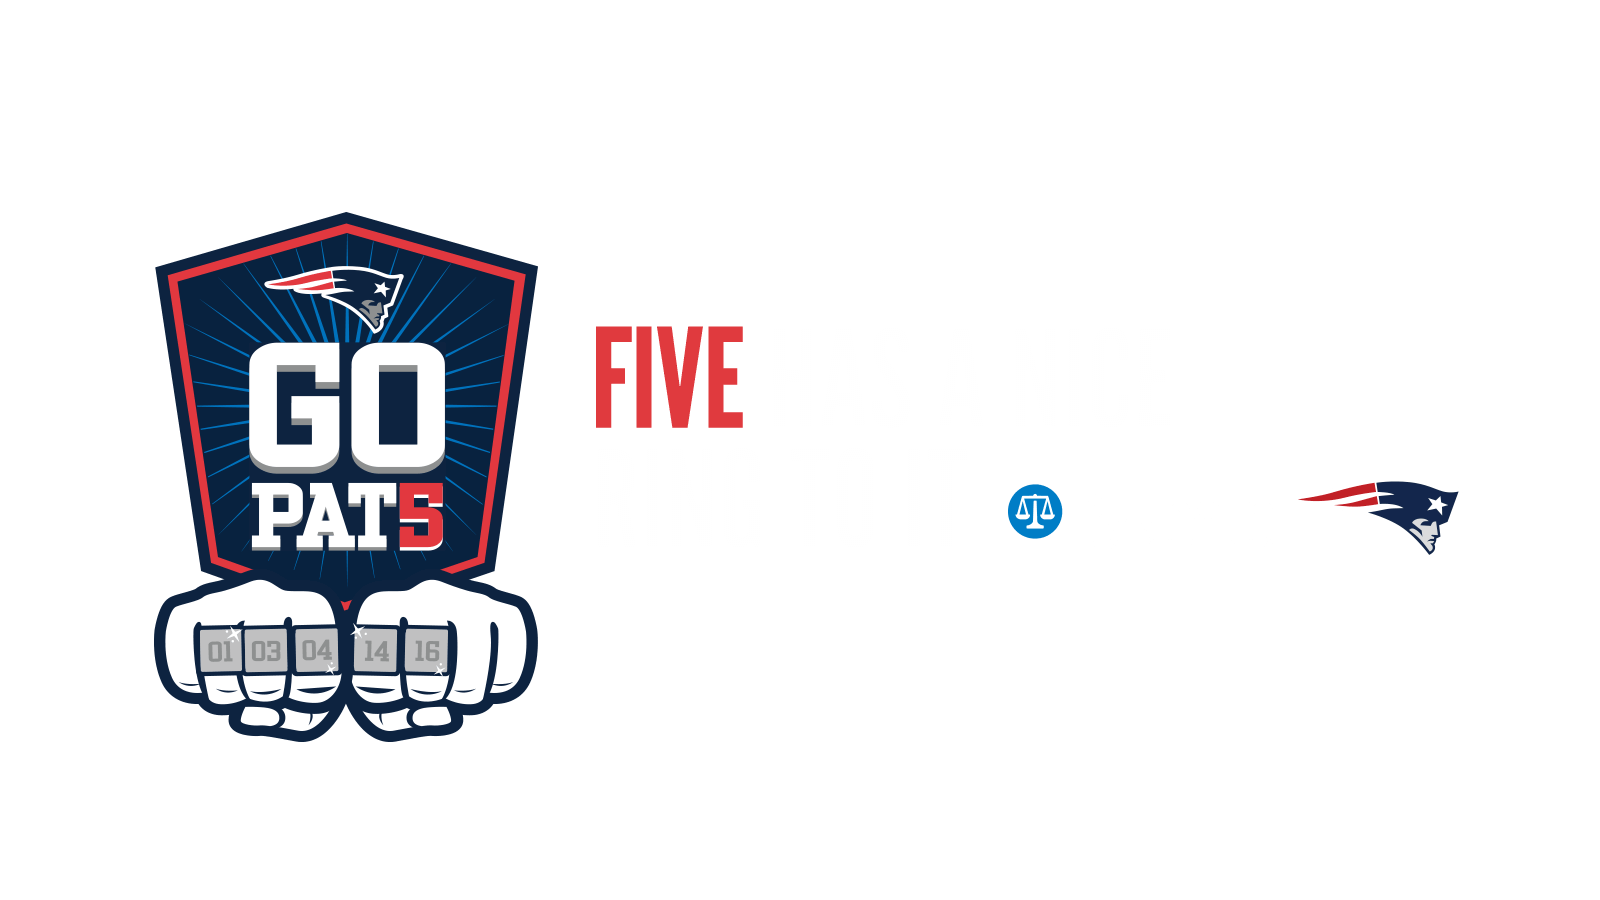 Five has a nice ring to it.  Go pats.